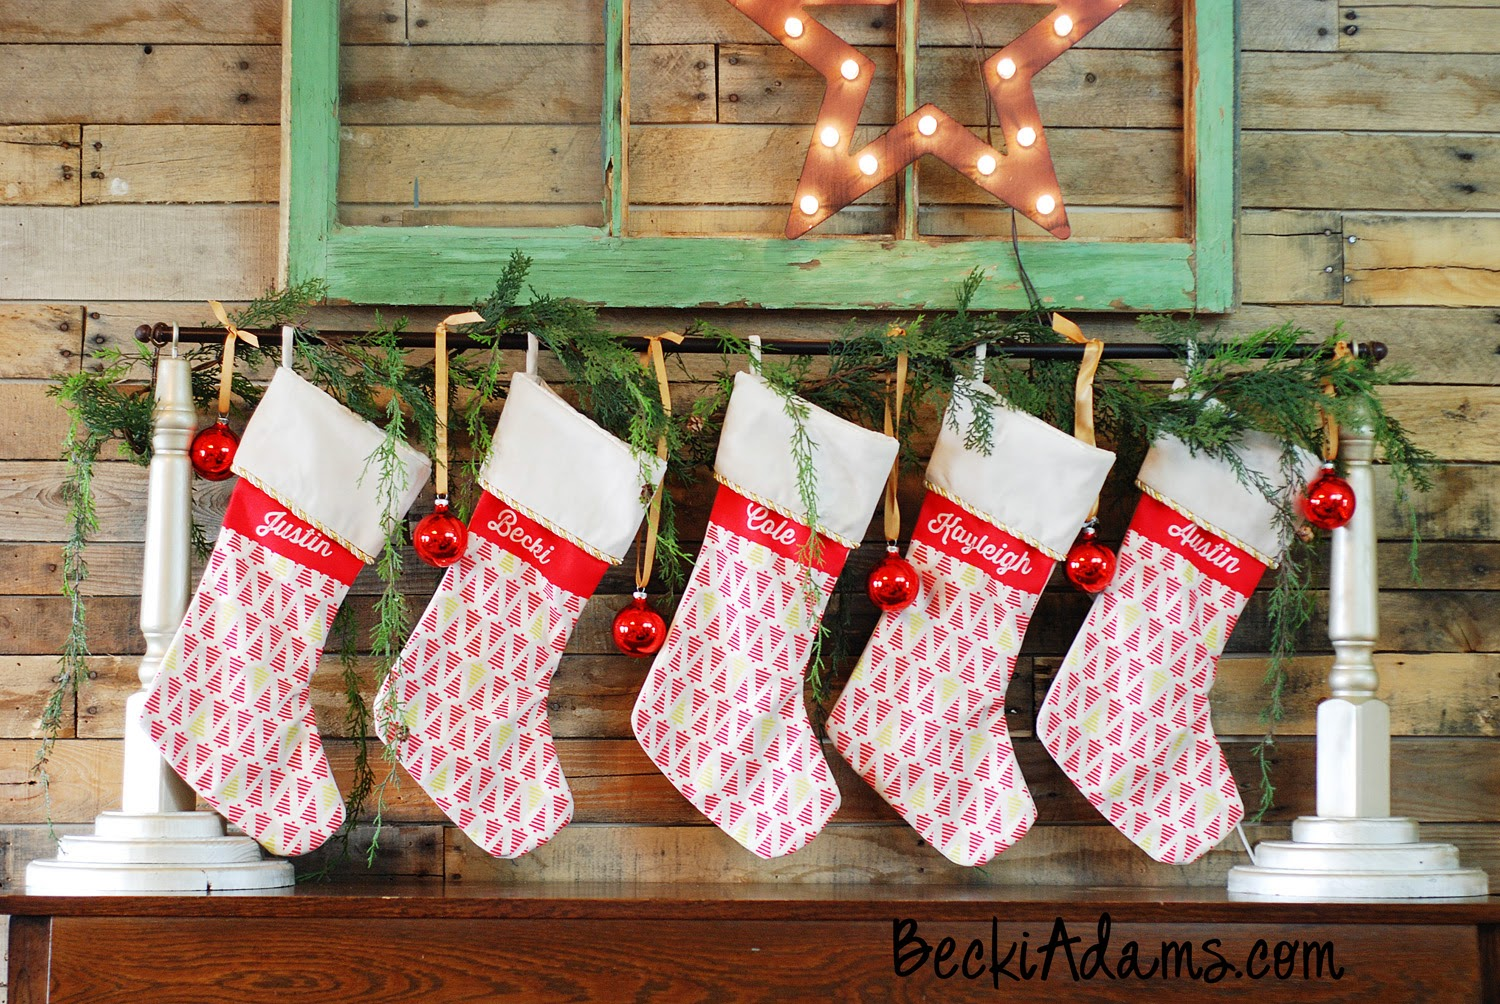 DIY Stocking Holder by @jbckadams with a tutorial #DIYstockingholder #stockings #Christmasstockings #stockinghanger